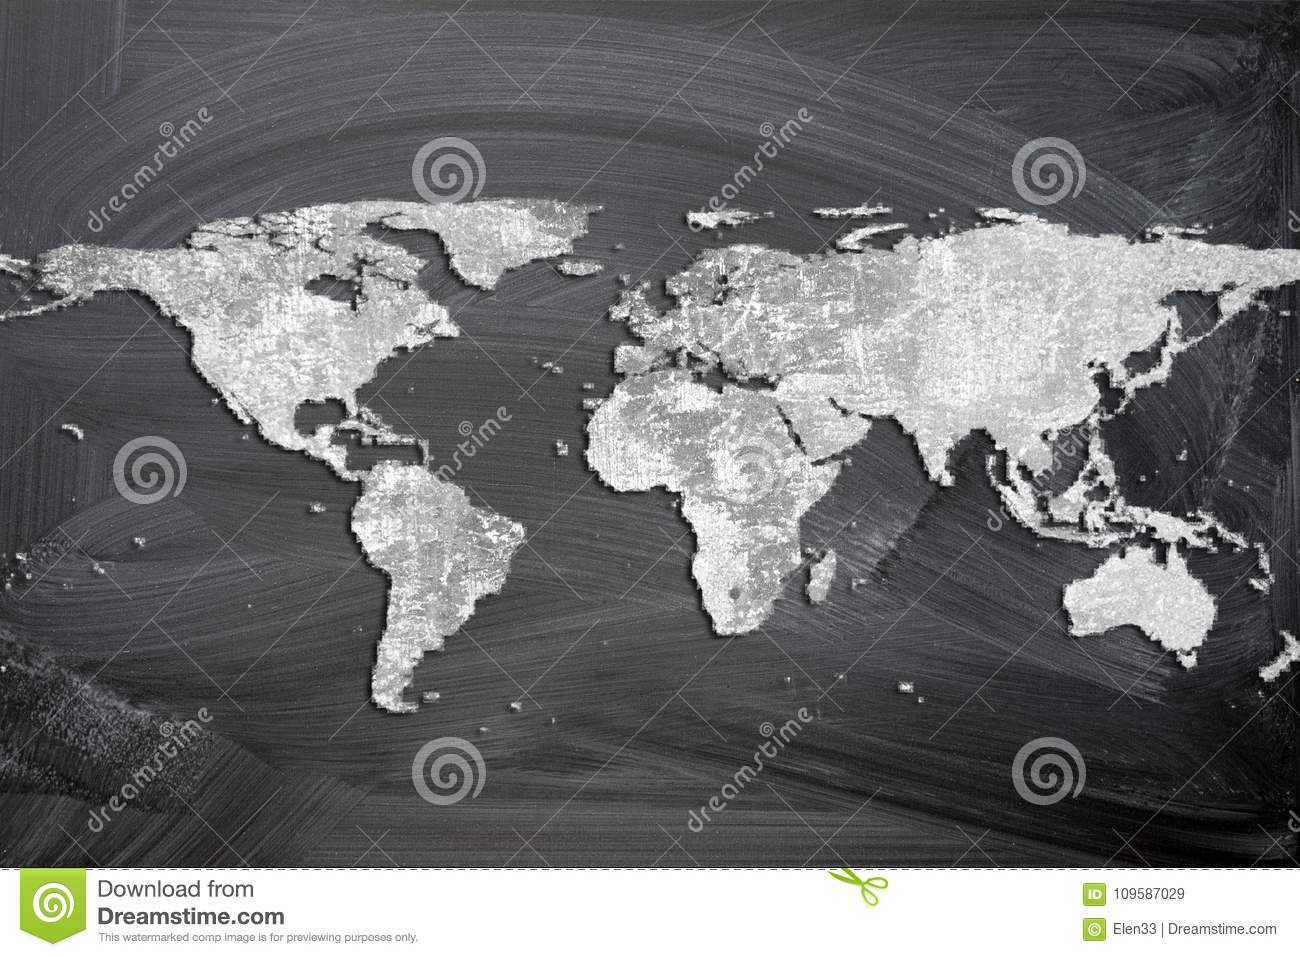 World map stock image. Image of africa, europe, geography - 109587029